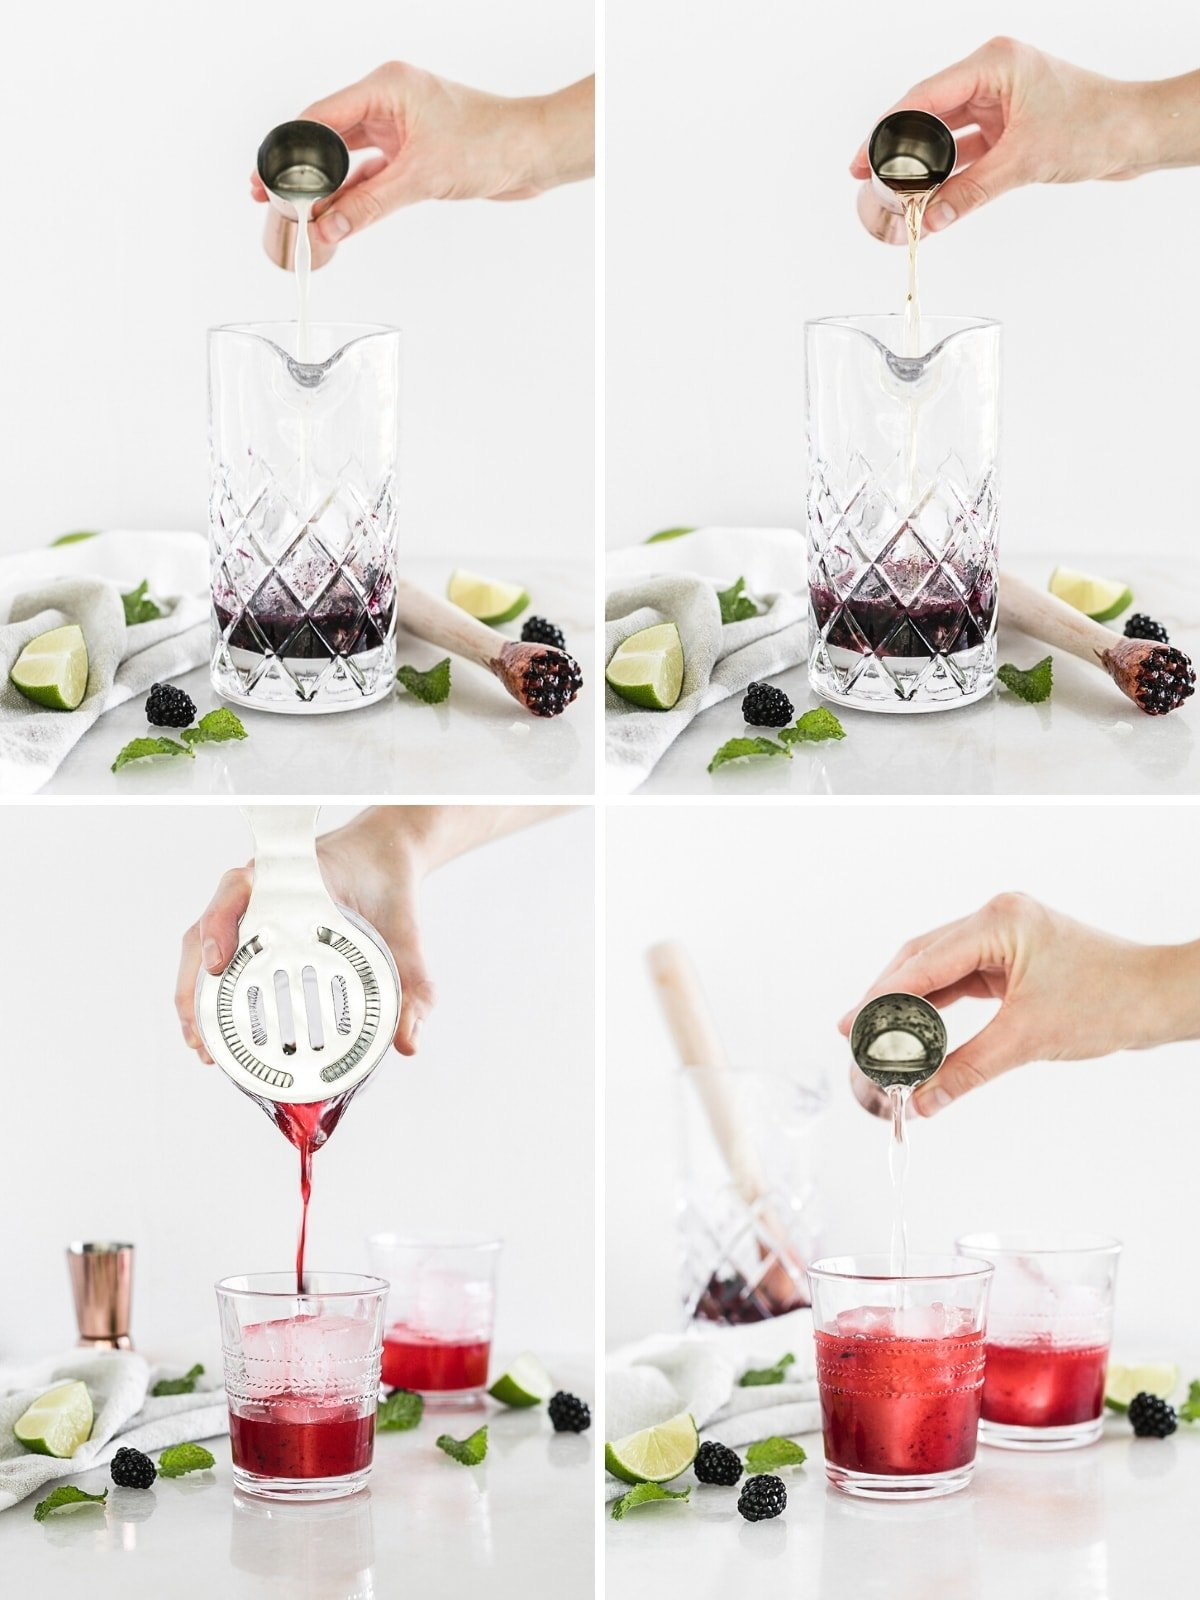 If you enjoy bourbon, you'll love this delicious blackberry bourbon smash, an bourbon cocktail with sweet summer blackberries, lemon and fresh muddled mint topped with bubbly soda. It's an easy and elegant summer sip! Via livelytable.com